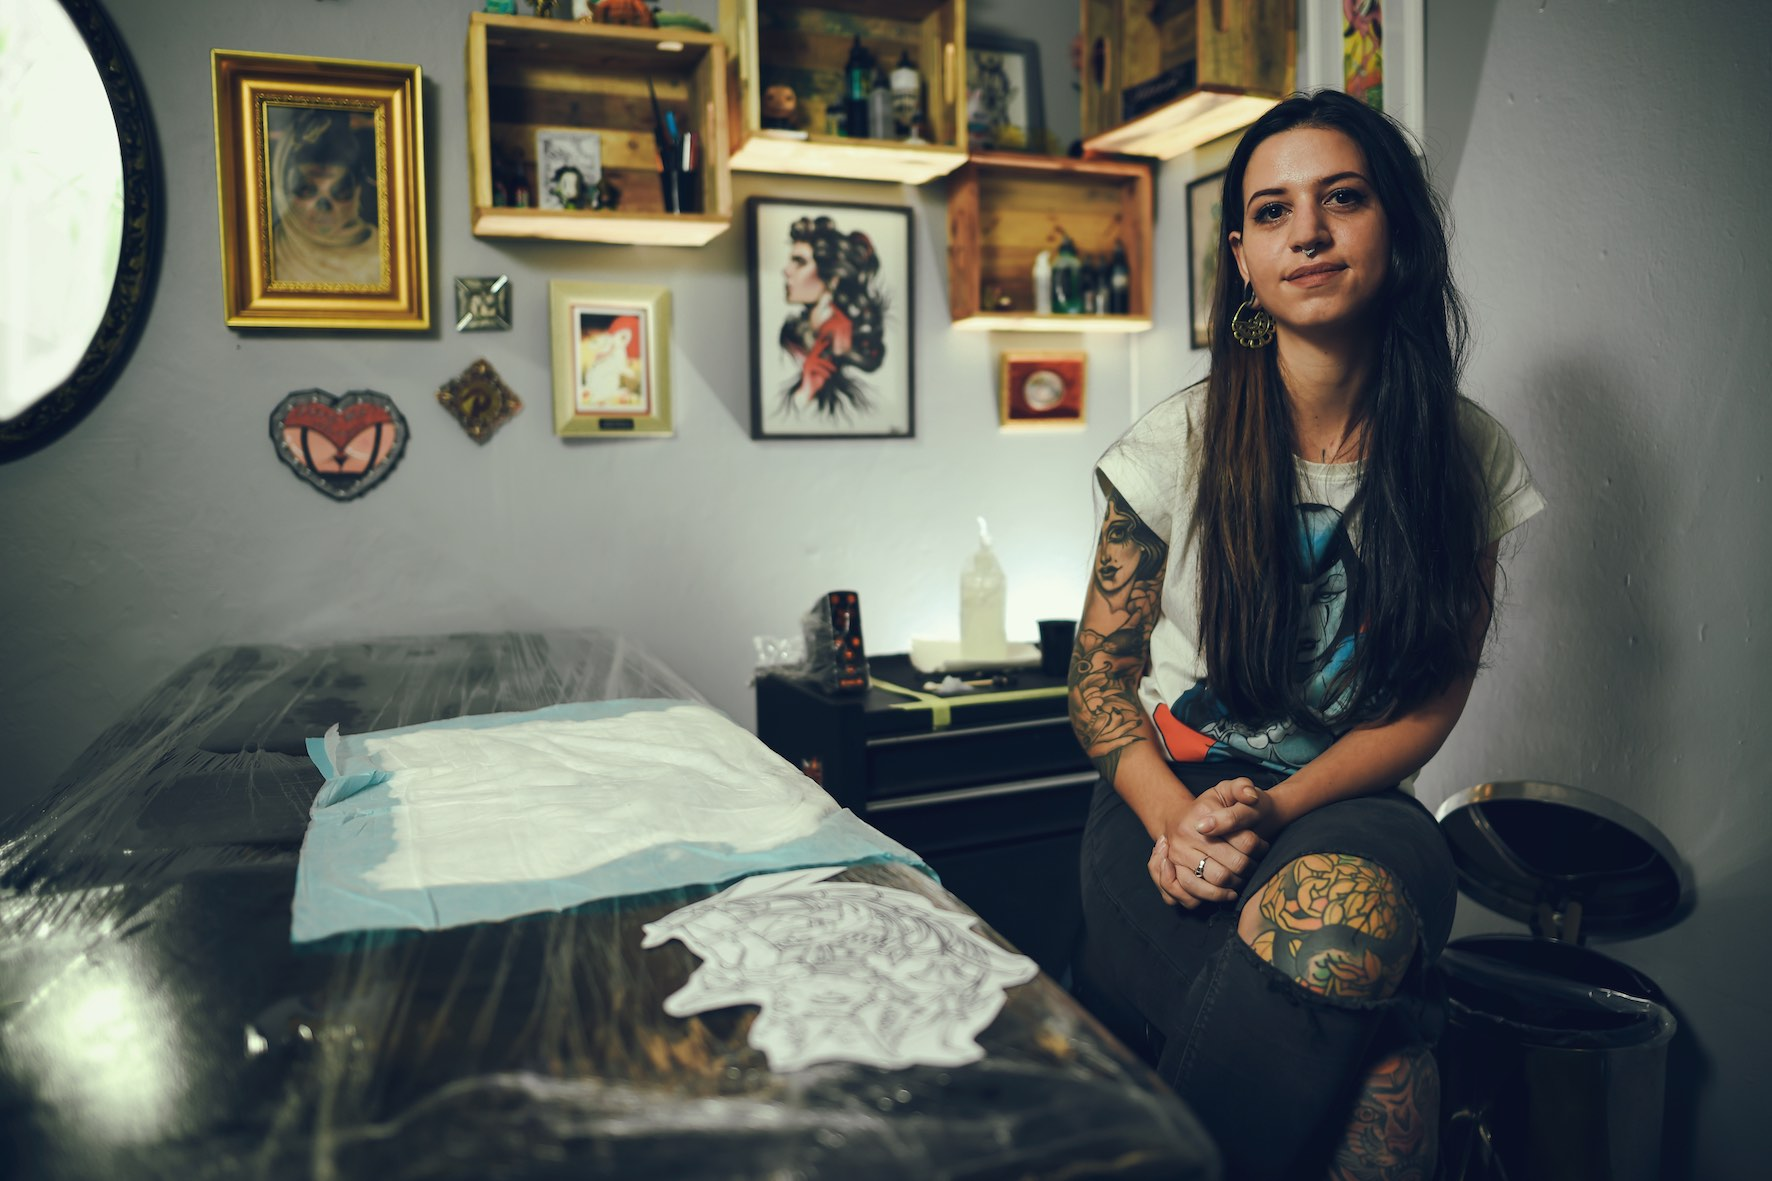 Meet Rocio Todisco as our Featured Tattoo Artist of the Week